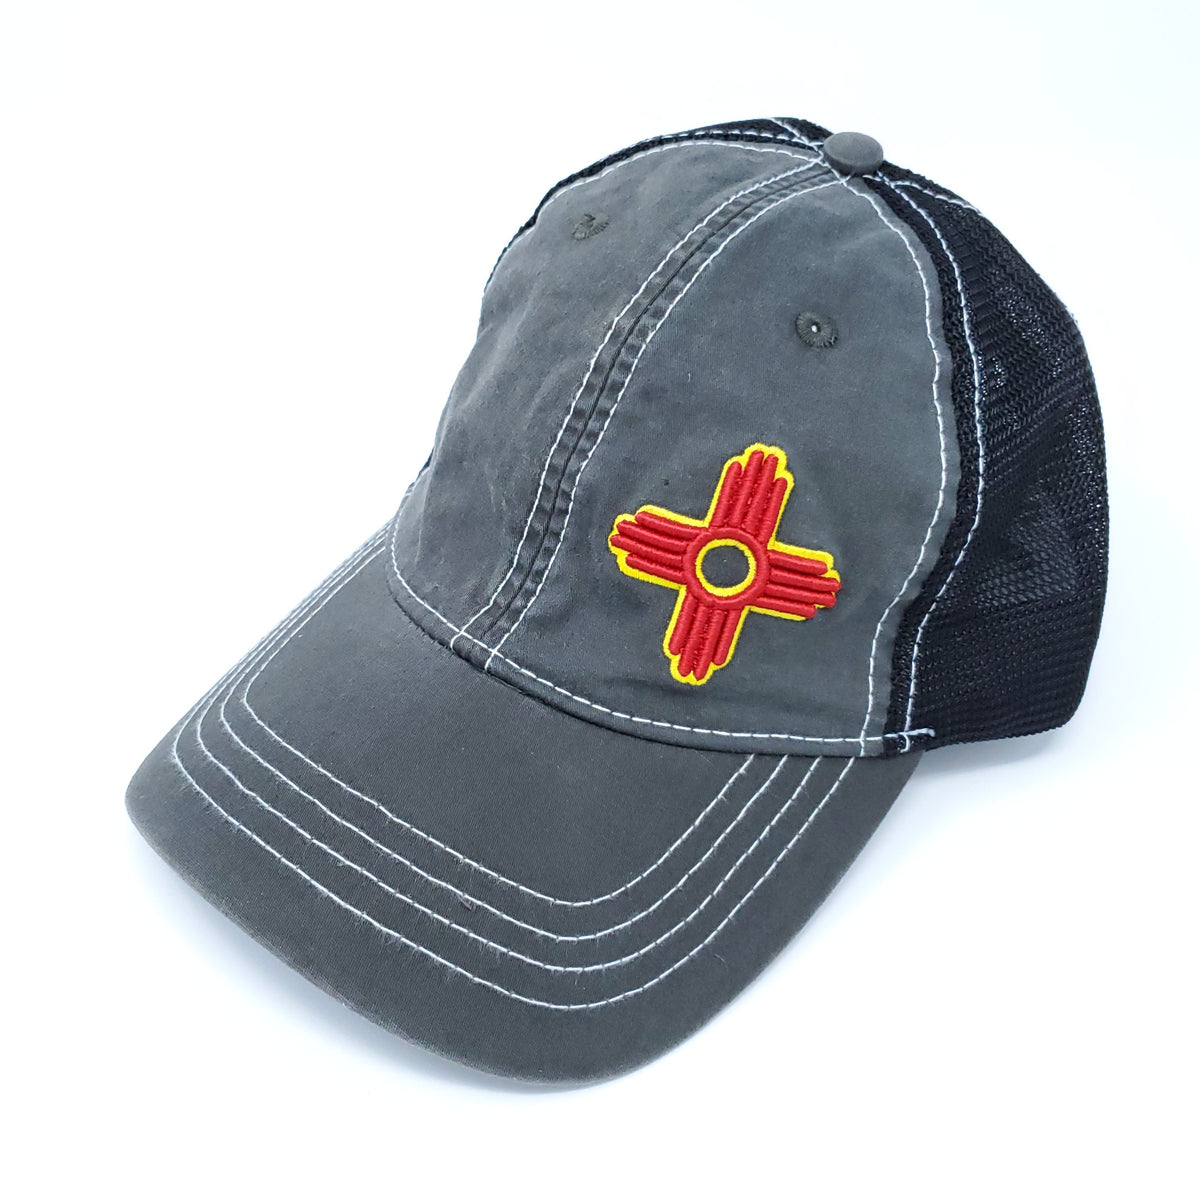 Vintage Trucker Style Snapback with Embroidered Zia Symbol - Ragged Apparel Screen Printing and Signs - www.nmshirts.com